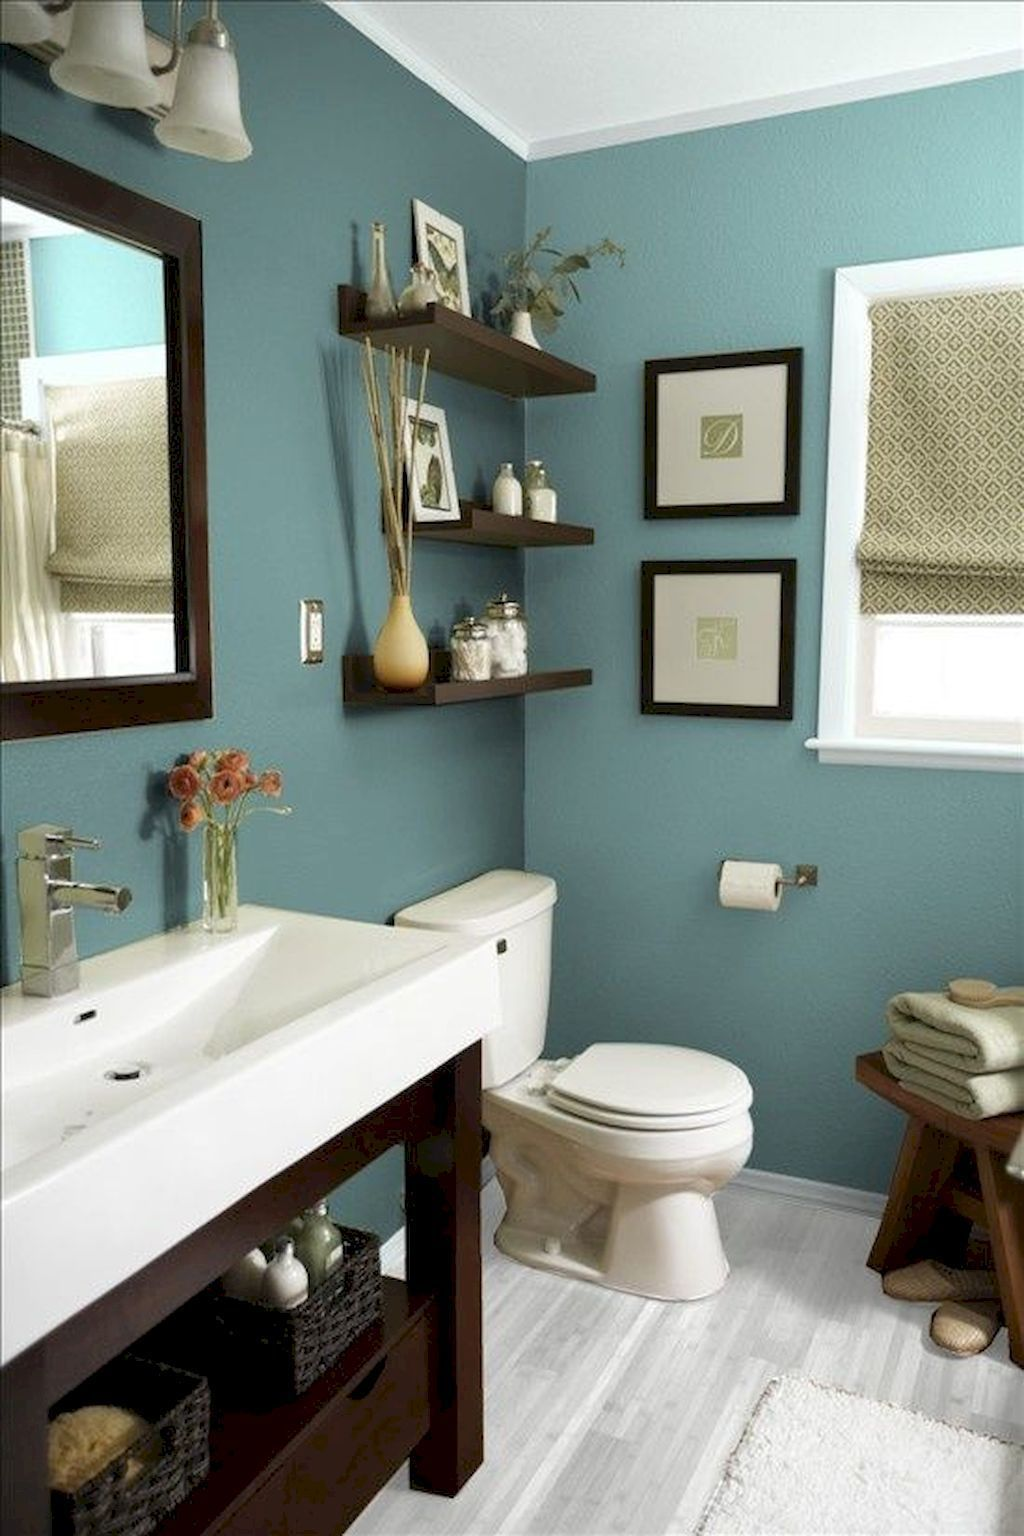 111 awesome small bathroom remodel ideas on a budget 11 on bathroom renovation ideas on a budget id=36307